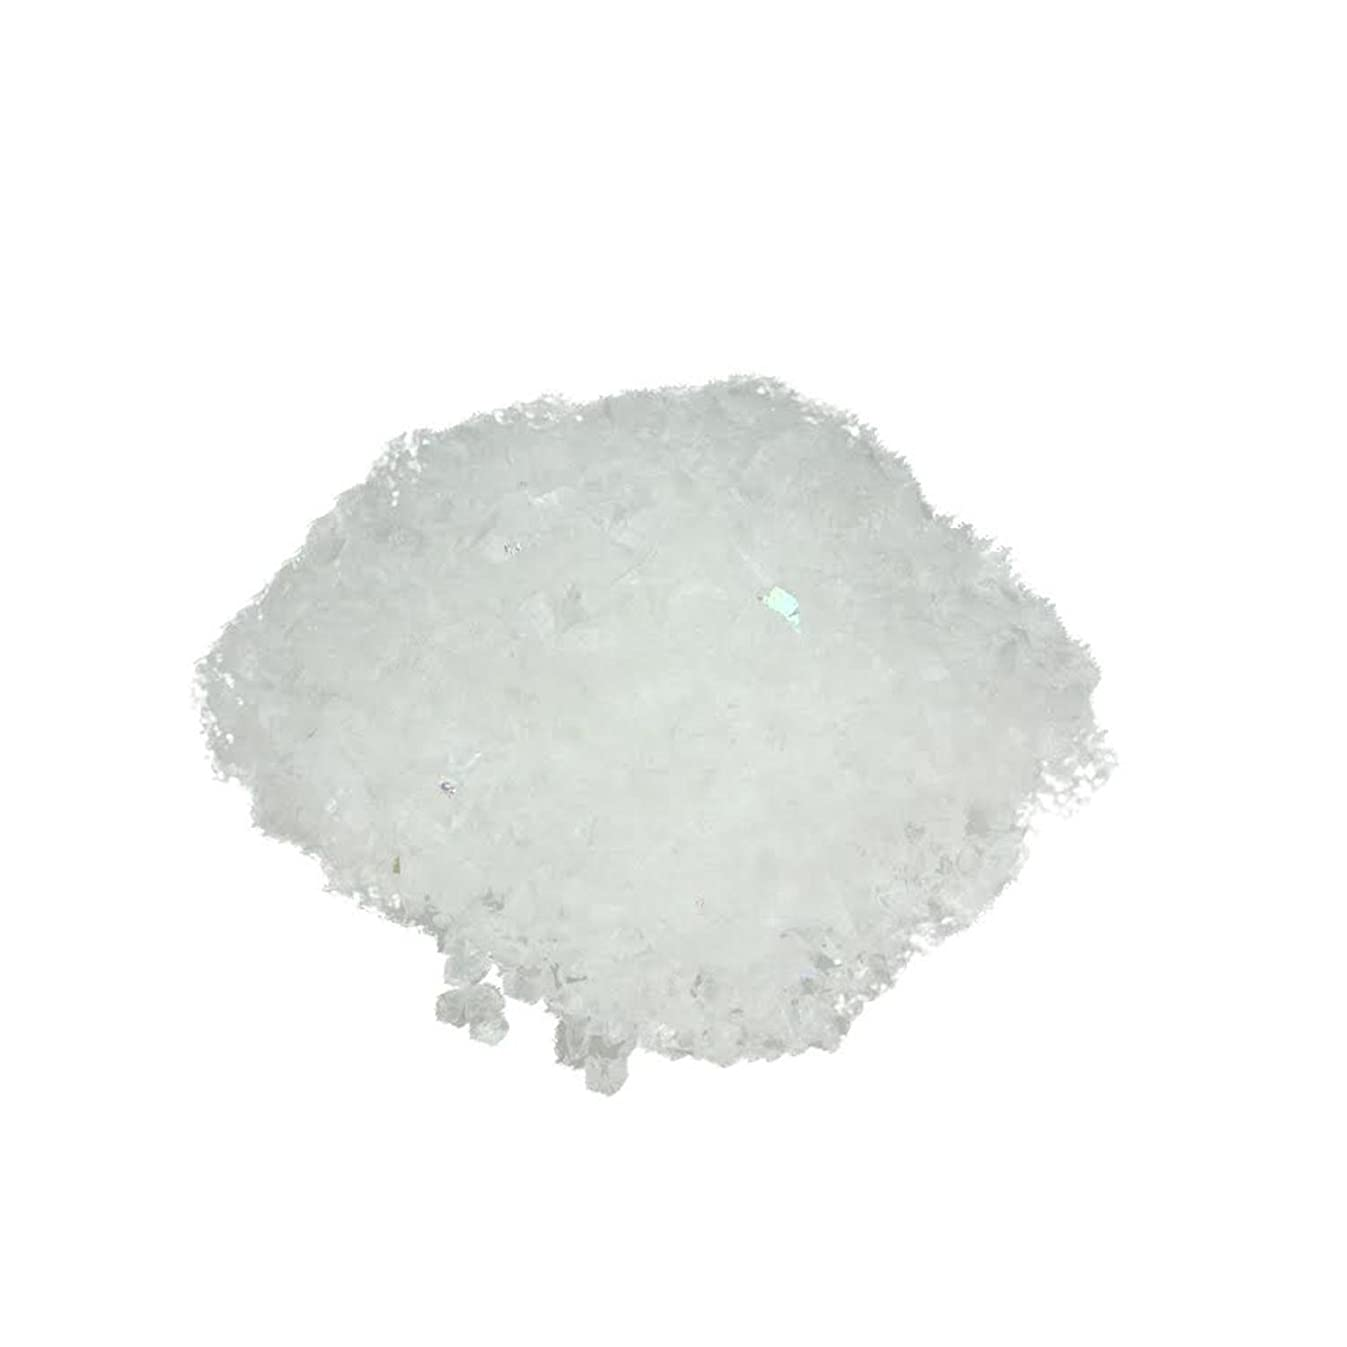 Buffalo Snow 1.5 oz. White Iridescent Artificial Powder Snow Twinkle Flakes for Christmas Decorating